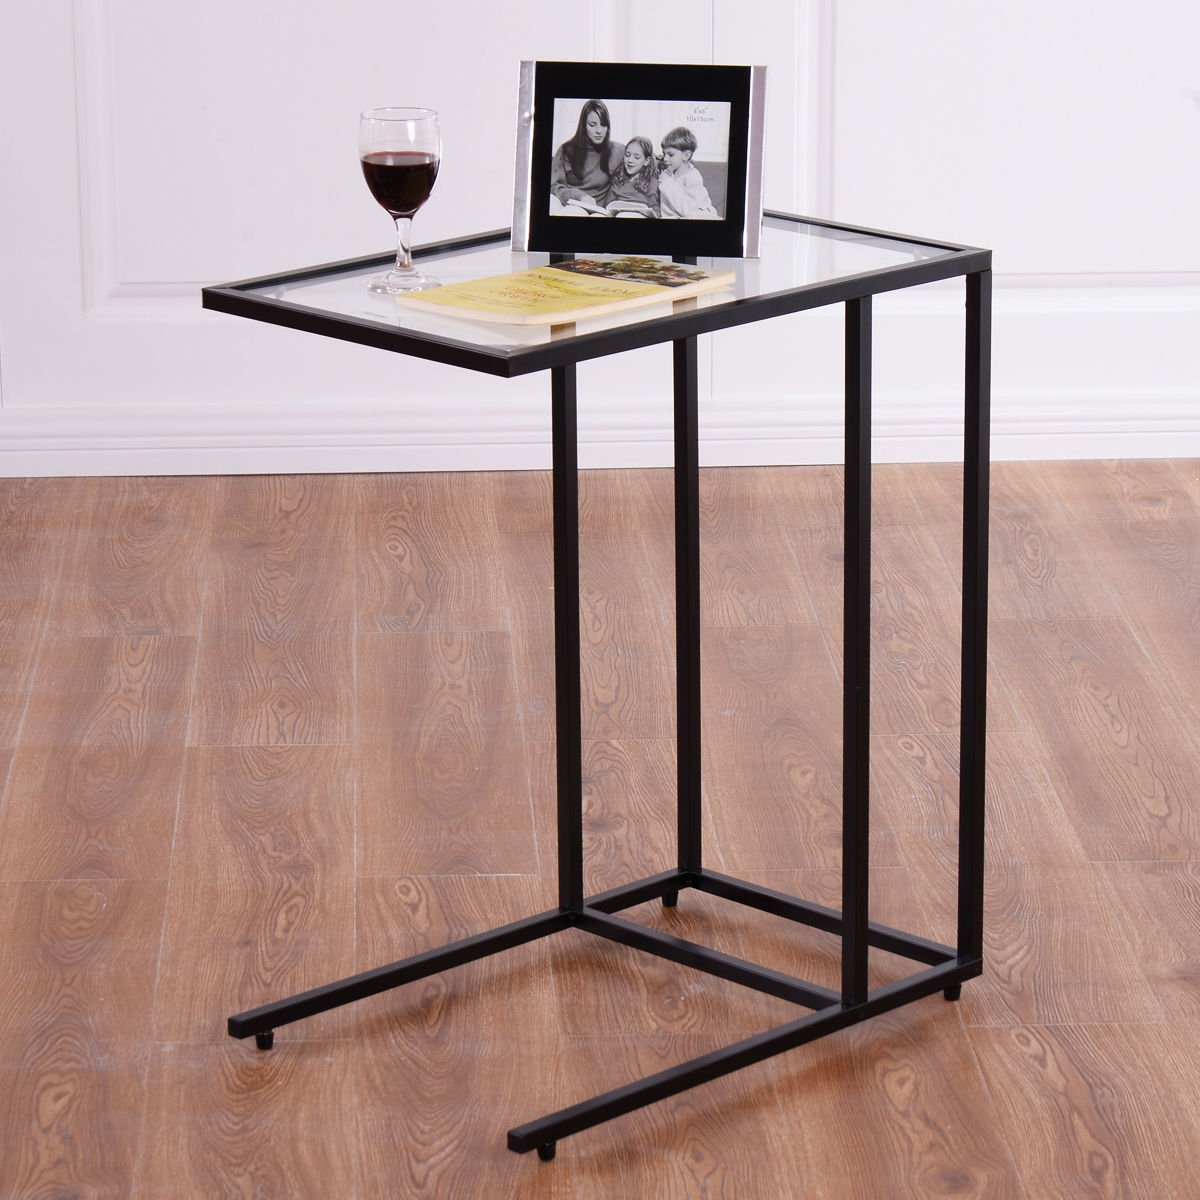 SKEMiDEX---Coffee Tray Side Sofa End Table Ottoman Couch Stand TV Lap Snack W/Glass Top New. Can be used as end tables, lamp tables, decorative displays tables, or simply accent pieces by SKEMiDEX (Image #5)